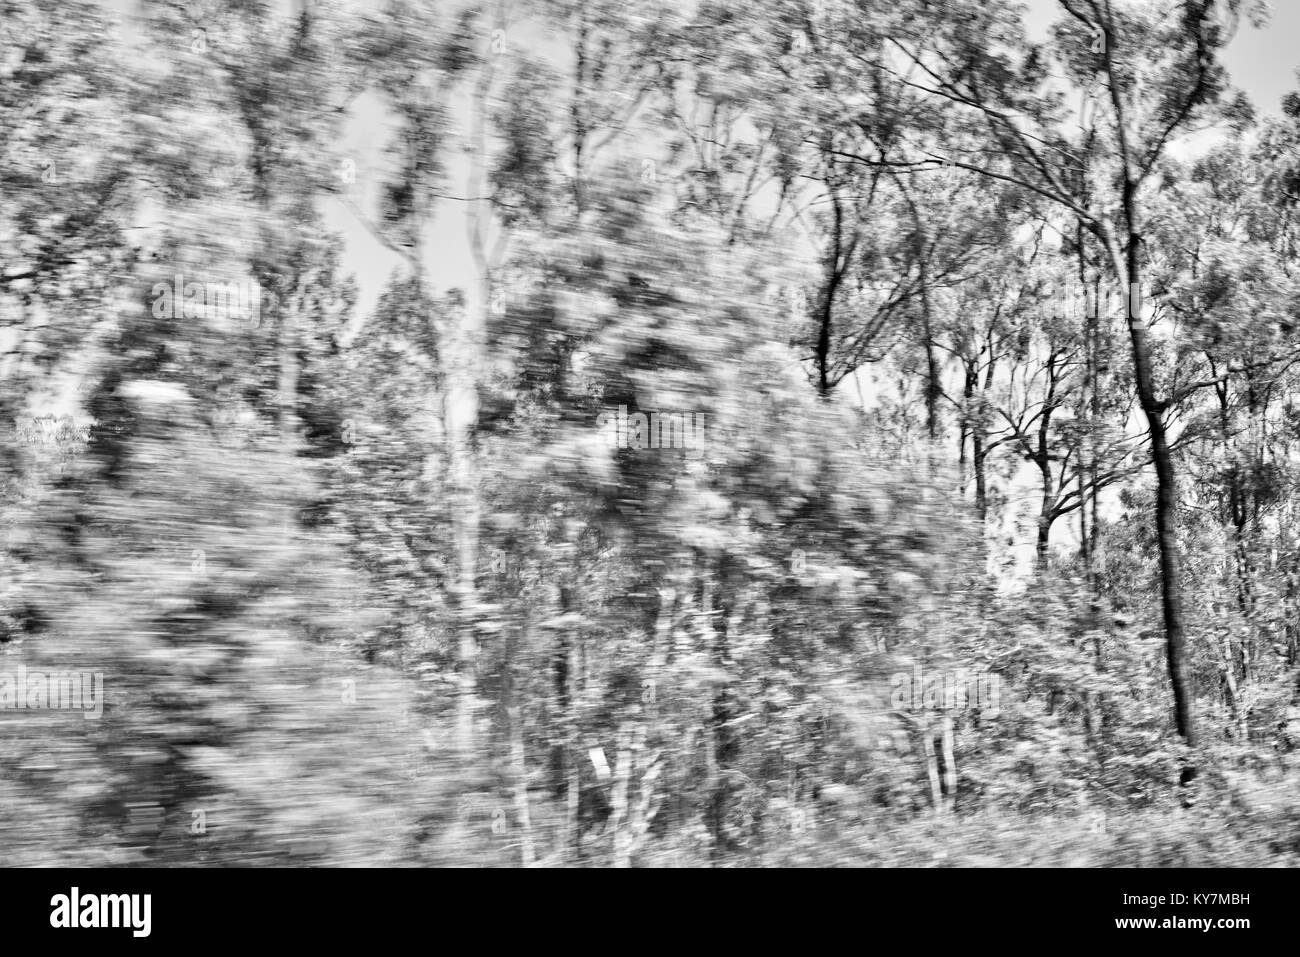 Trees in motion, Farmland and bush near Clairview, Queensland, Australia - Stock Image